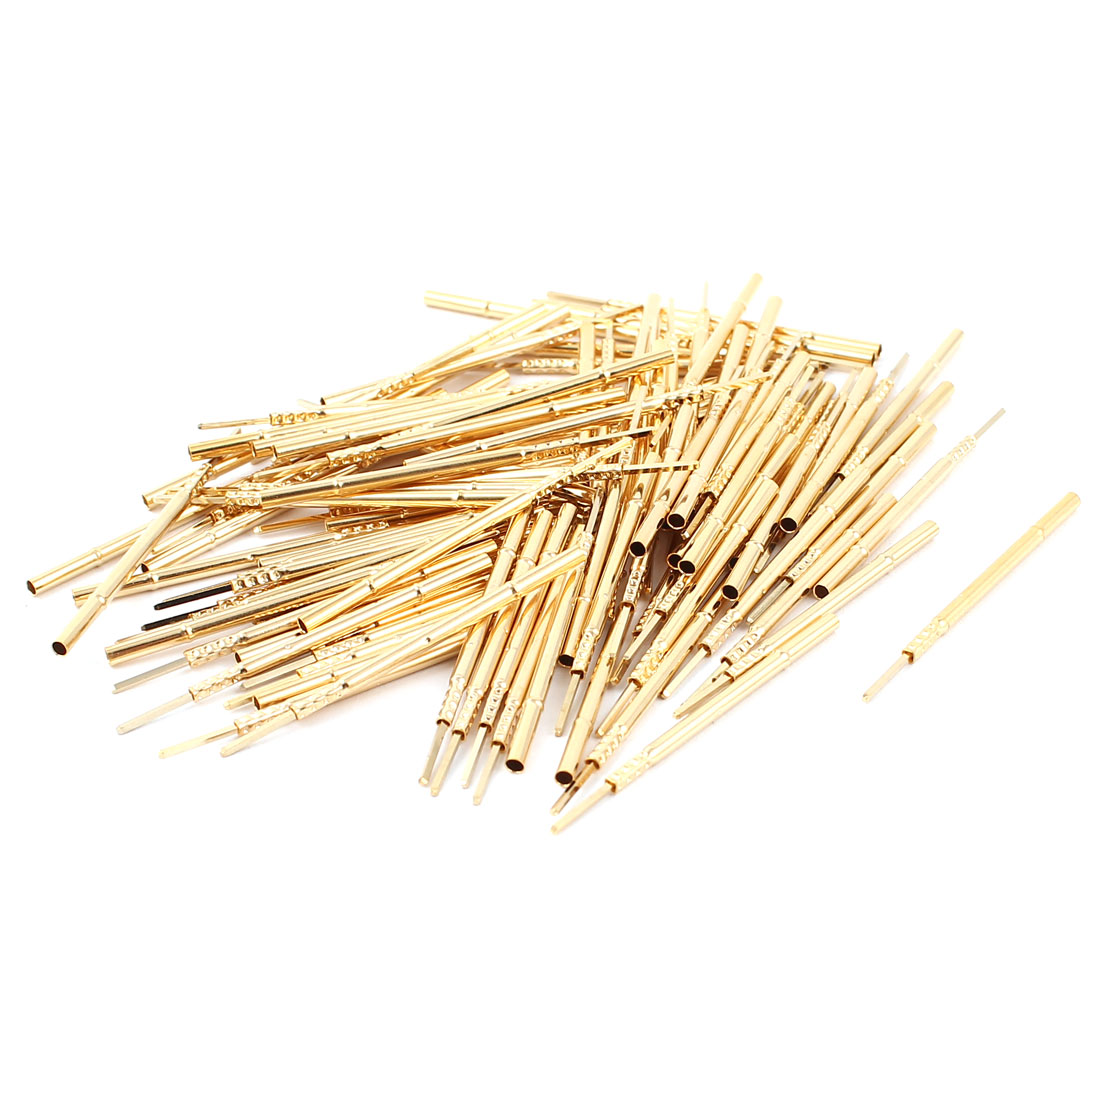 100 Pcs R100-4W 1.7mm Dia Testing Probe Pin Receptacles Gold Tone